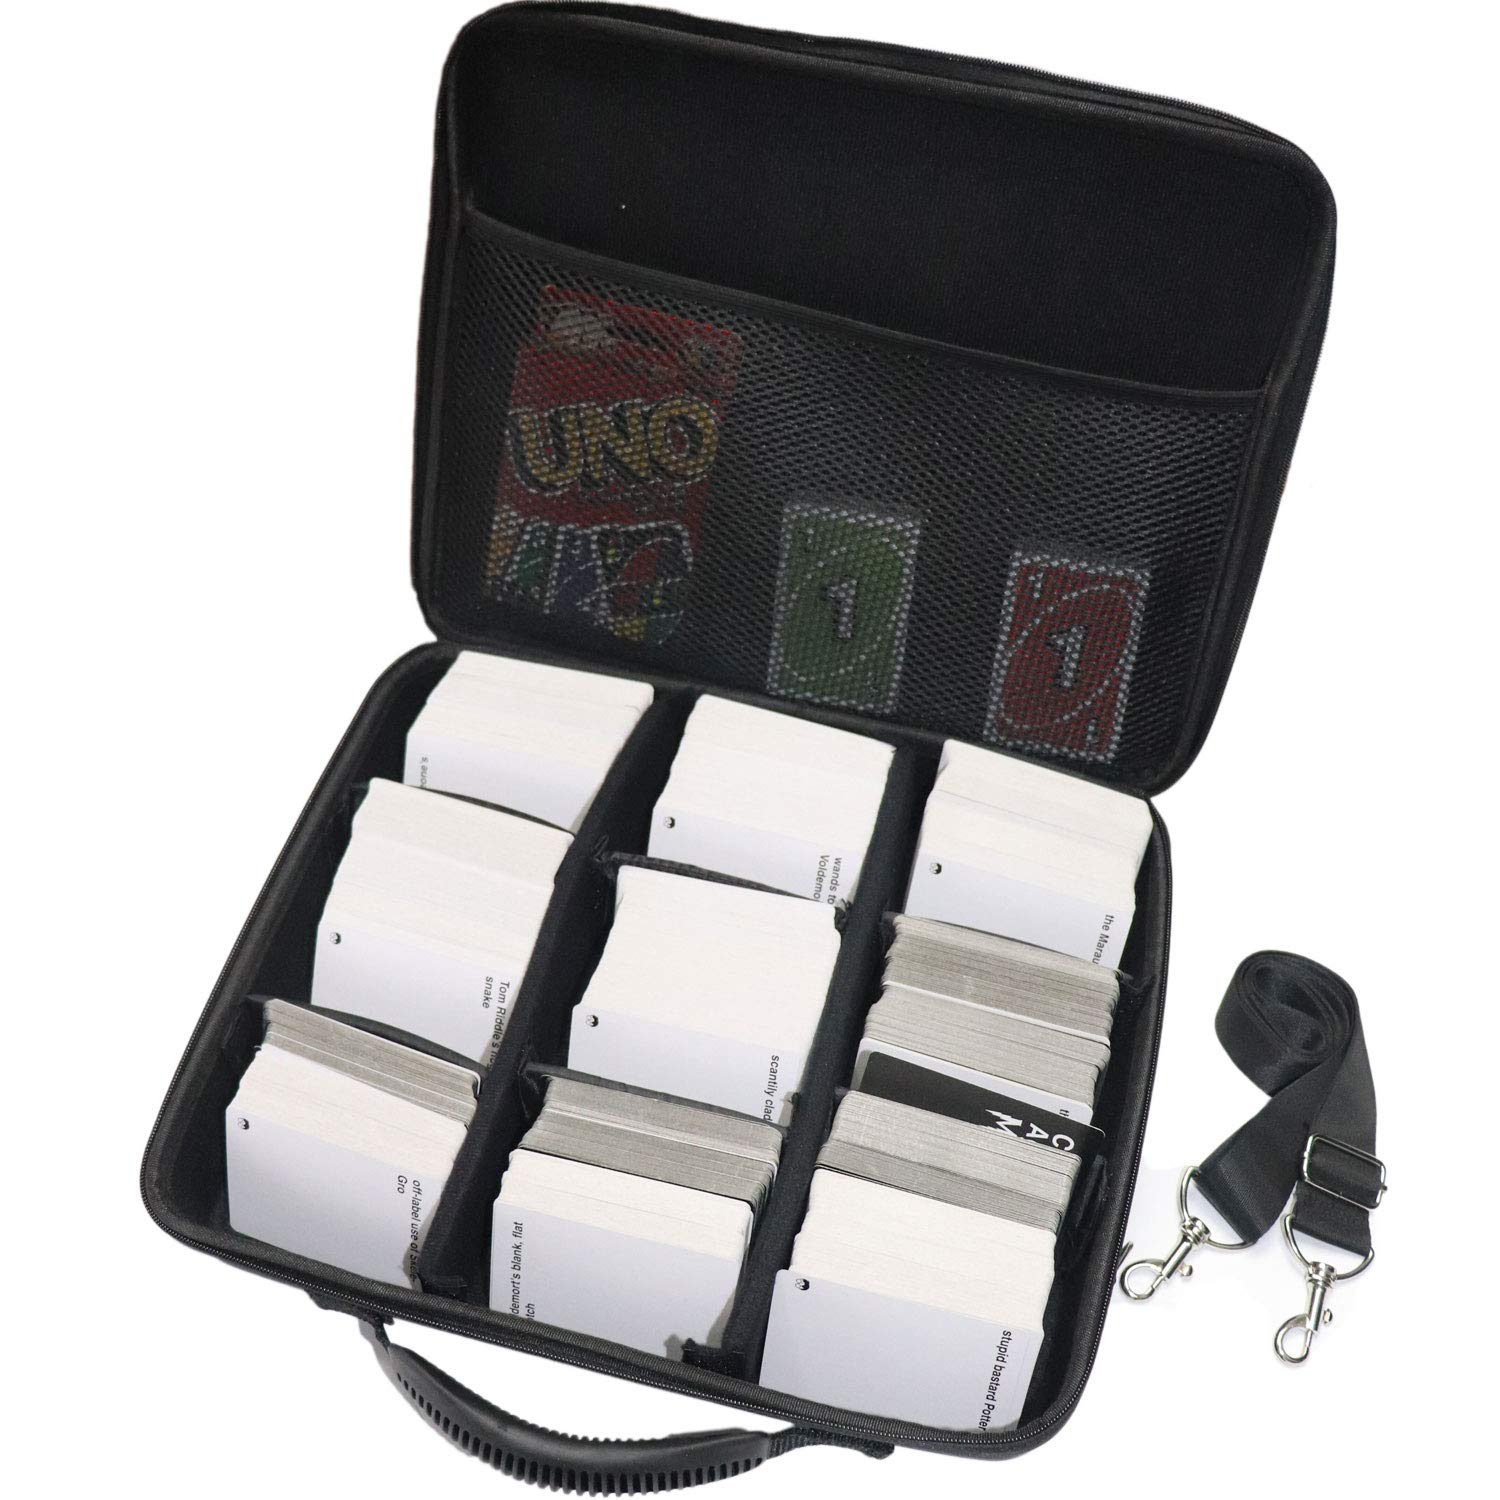 LAZAMYASA Portable Card Game Case for 2,400+ Cards Box. Fits Main Game and All Expansions (Extra Large) by LAZAMYASA